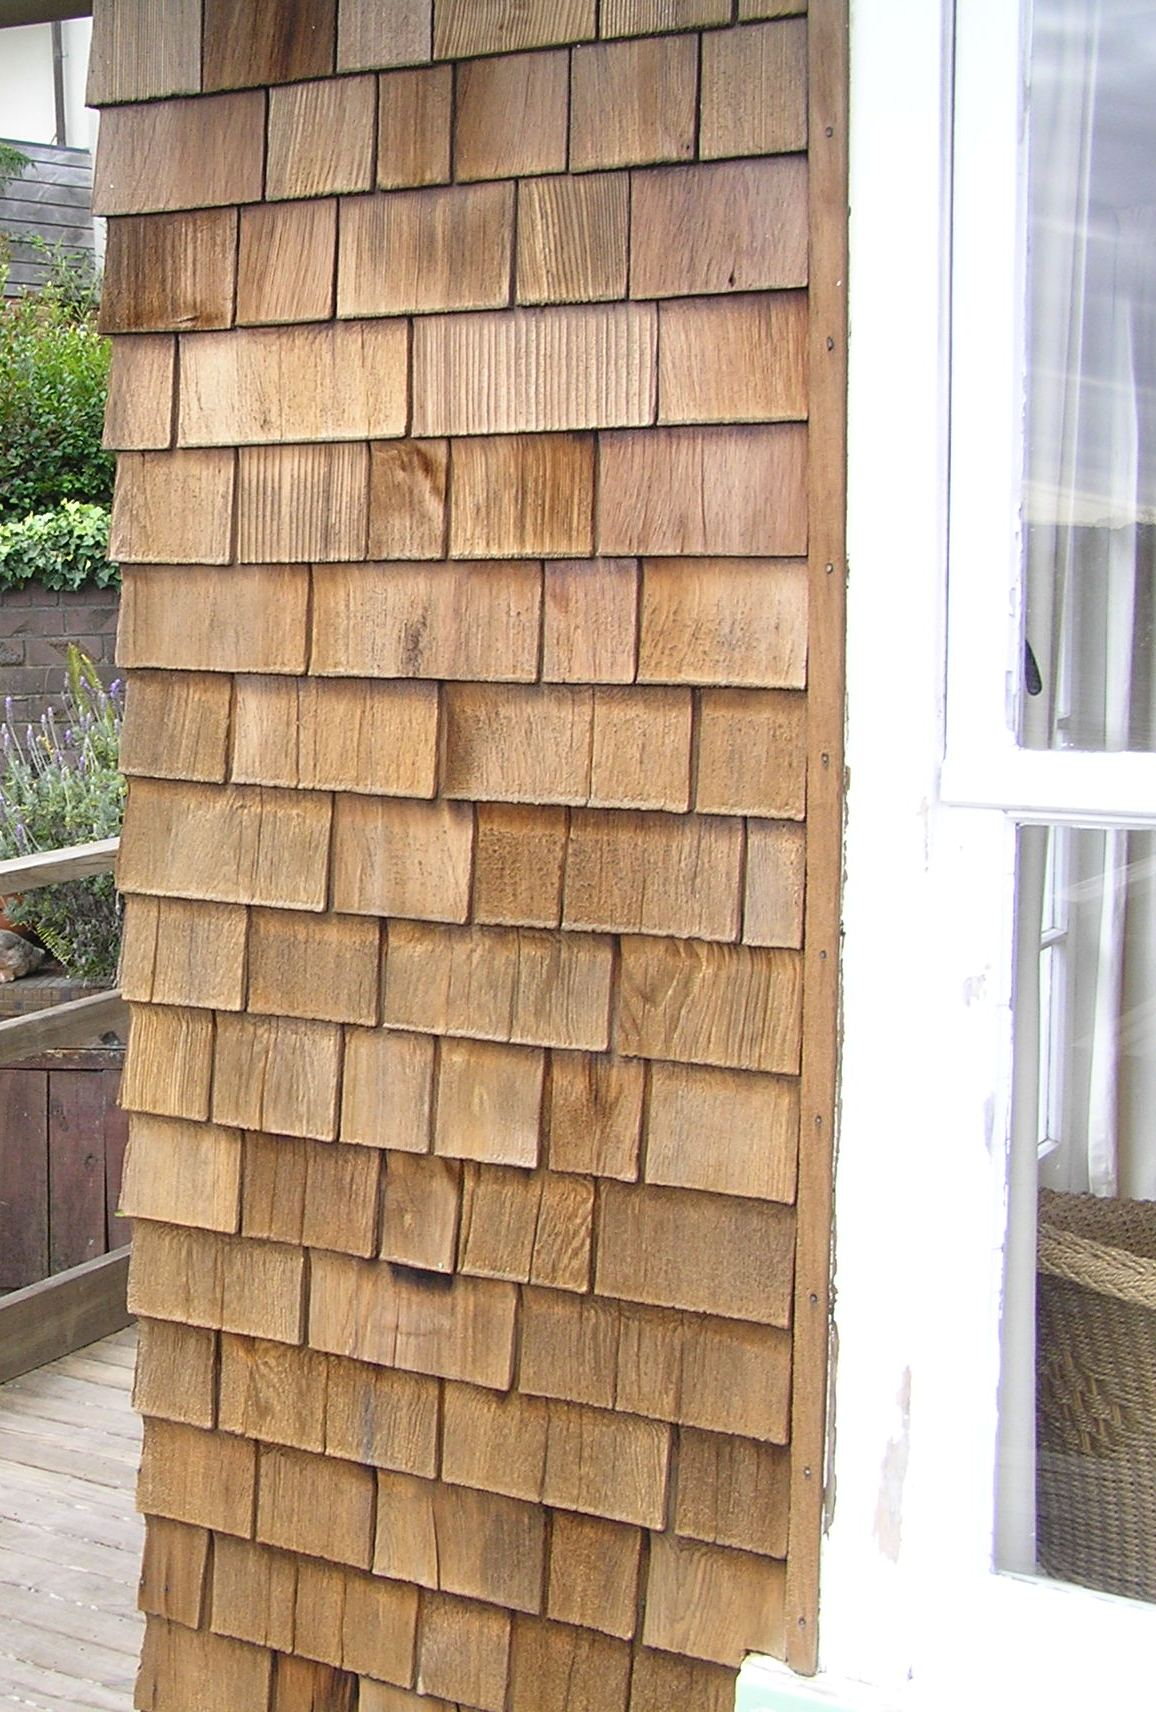 Jeff Christenson Deck Wall After Cleaning 1.JPG